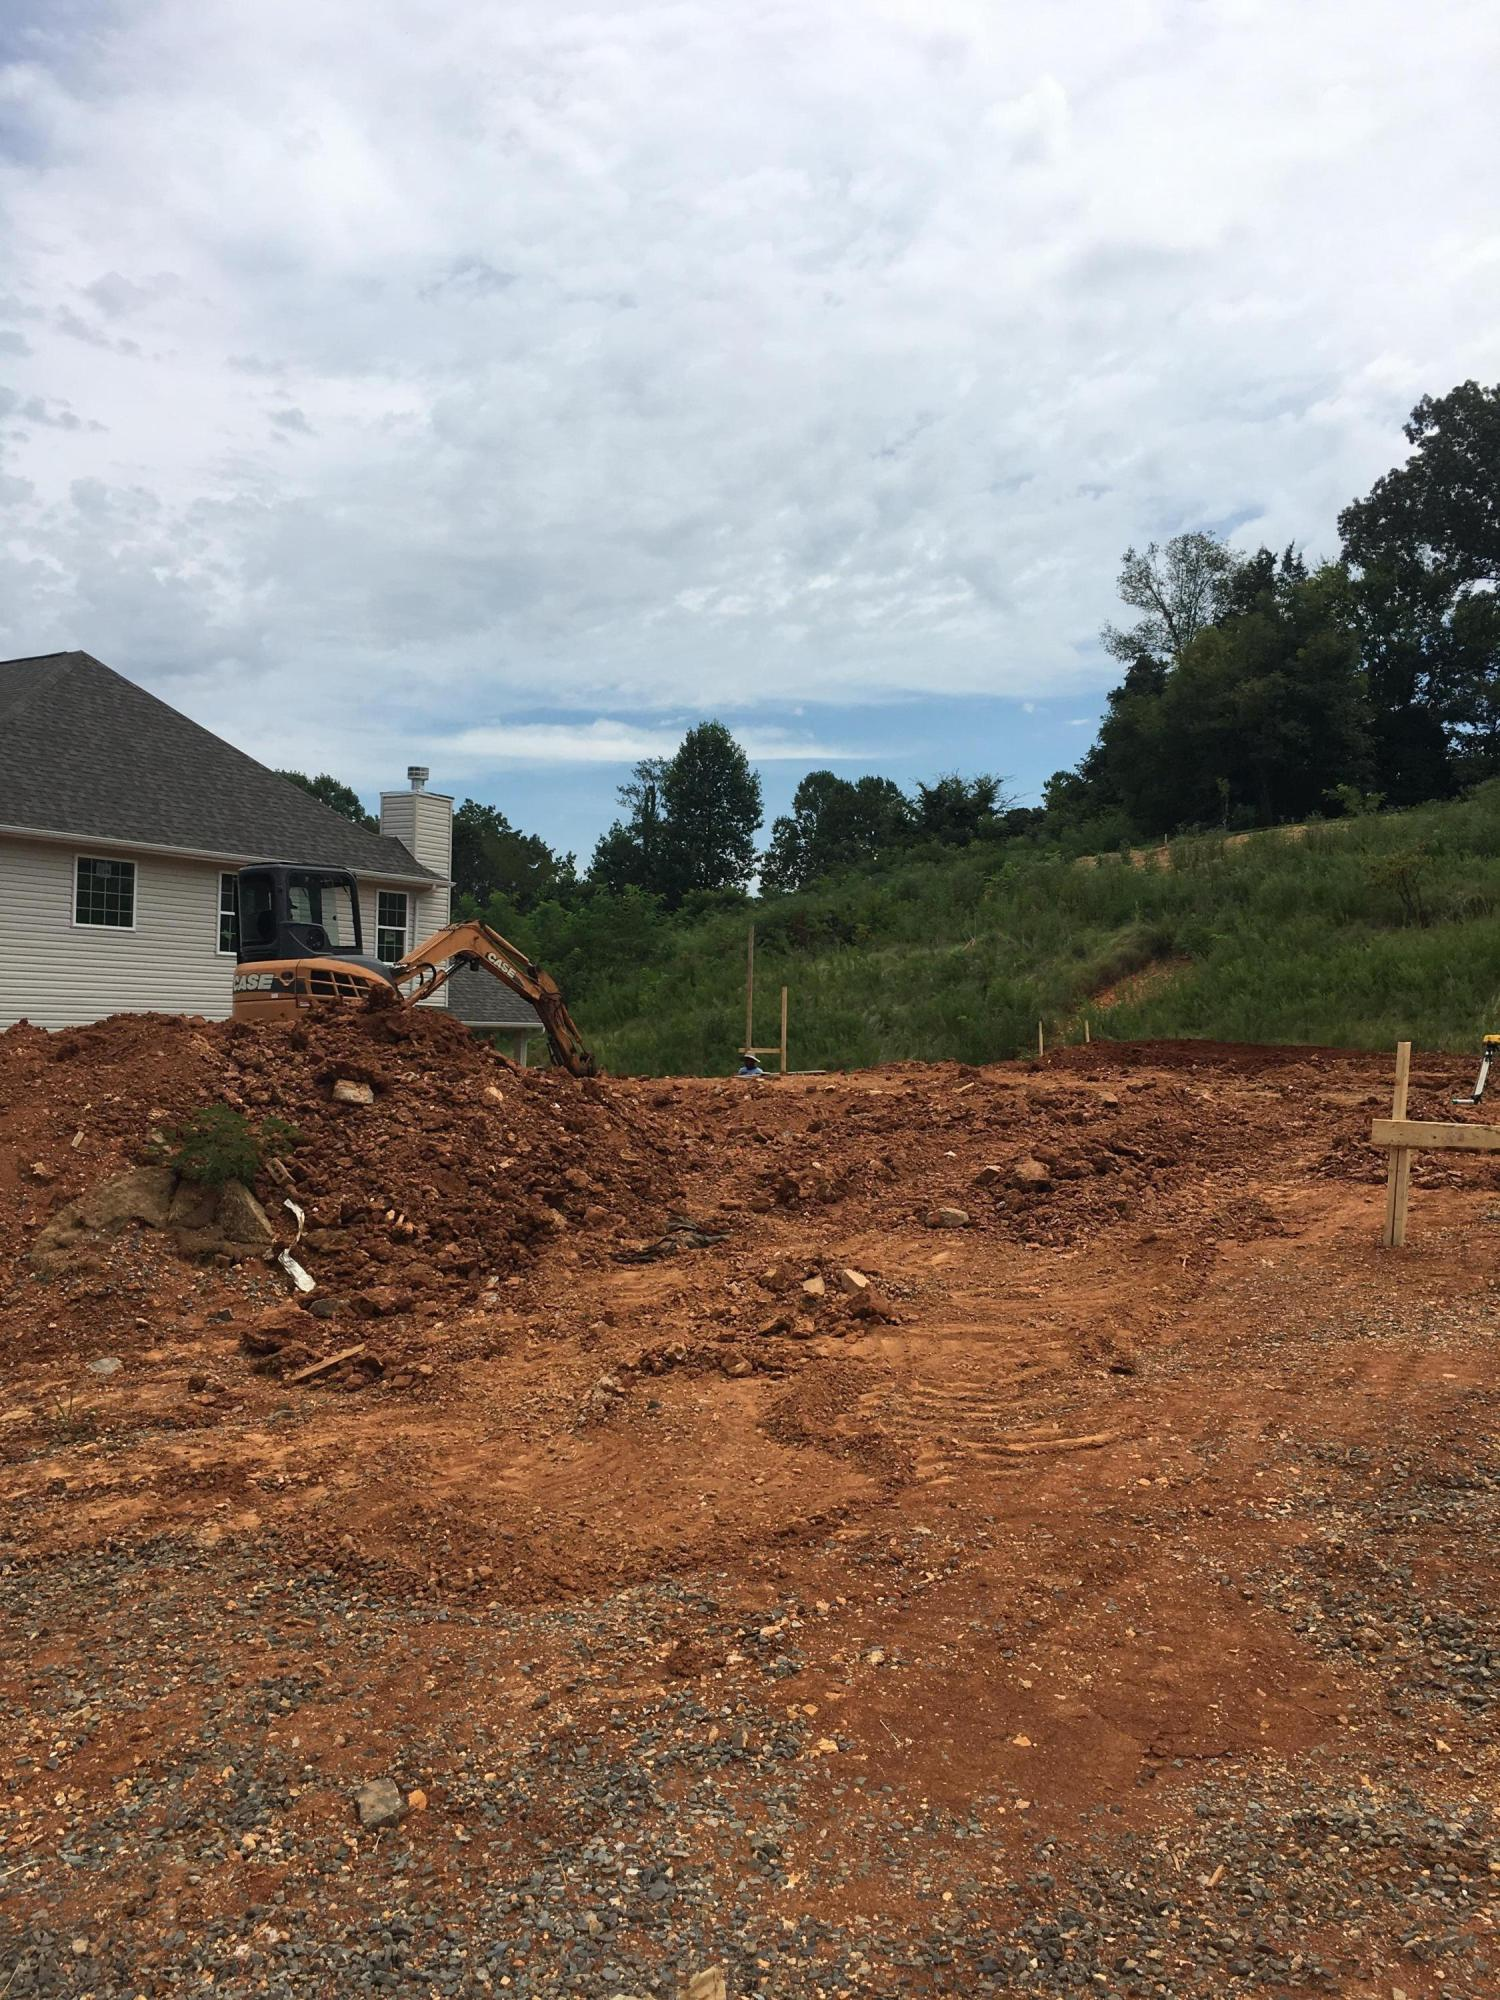 3332 Flagstaff Lane, Knoxville, Tennessee 37931, 3 Bedrooms Bedrooms, ,3 BathroomsBathrooms,Single Family,For Sale,Flagstaff,1089334